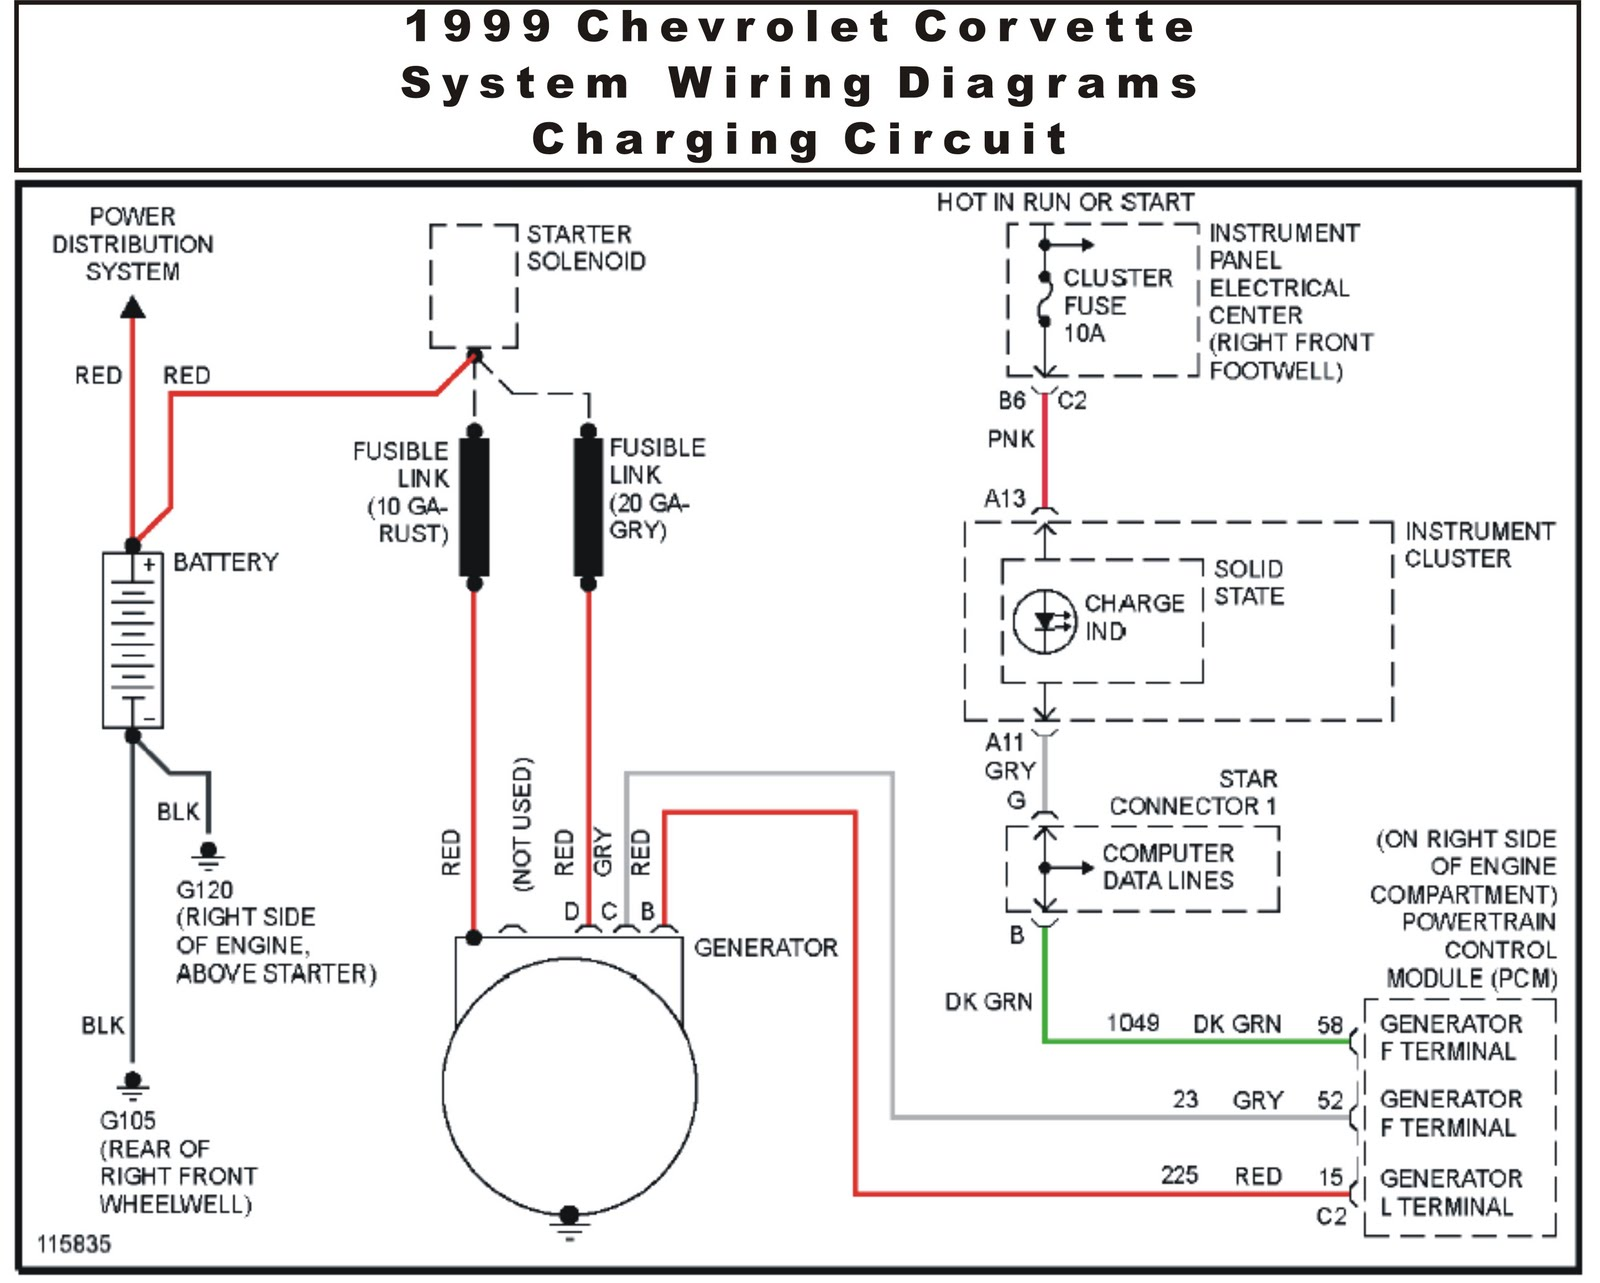 1999 Corvette Wiring Diagram Opinions About 2009 Isuzu Npr Chevrolet System Diagrams Charging Circuit Schematic Radio